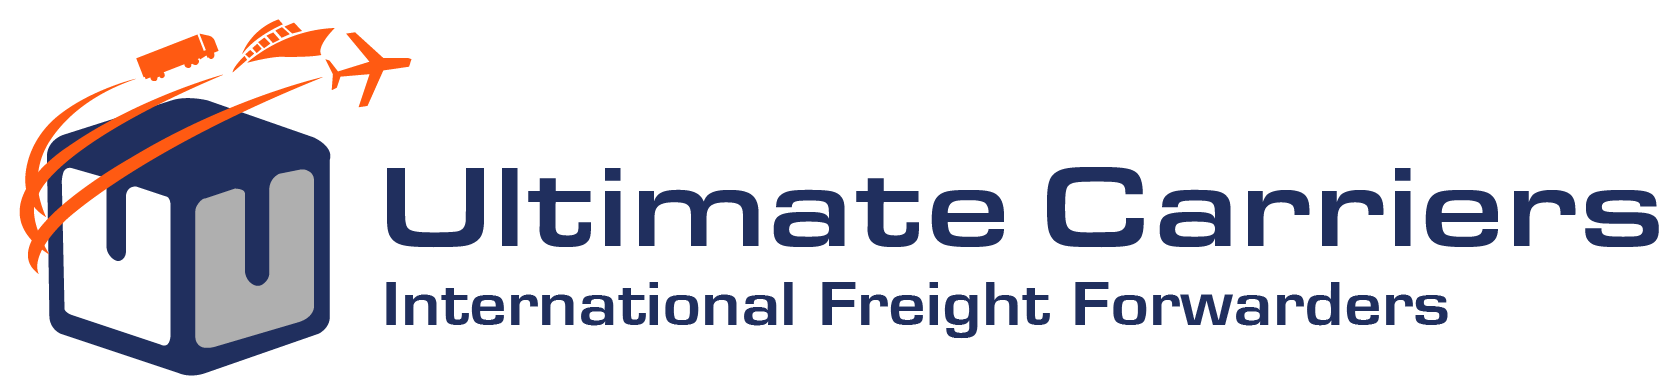 Ultimate Carriers new logo v2